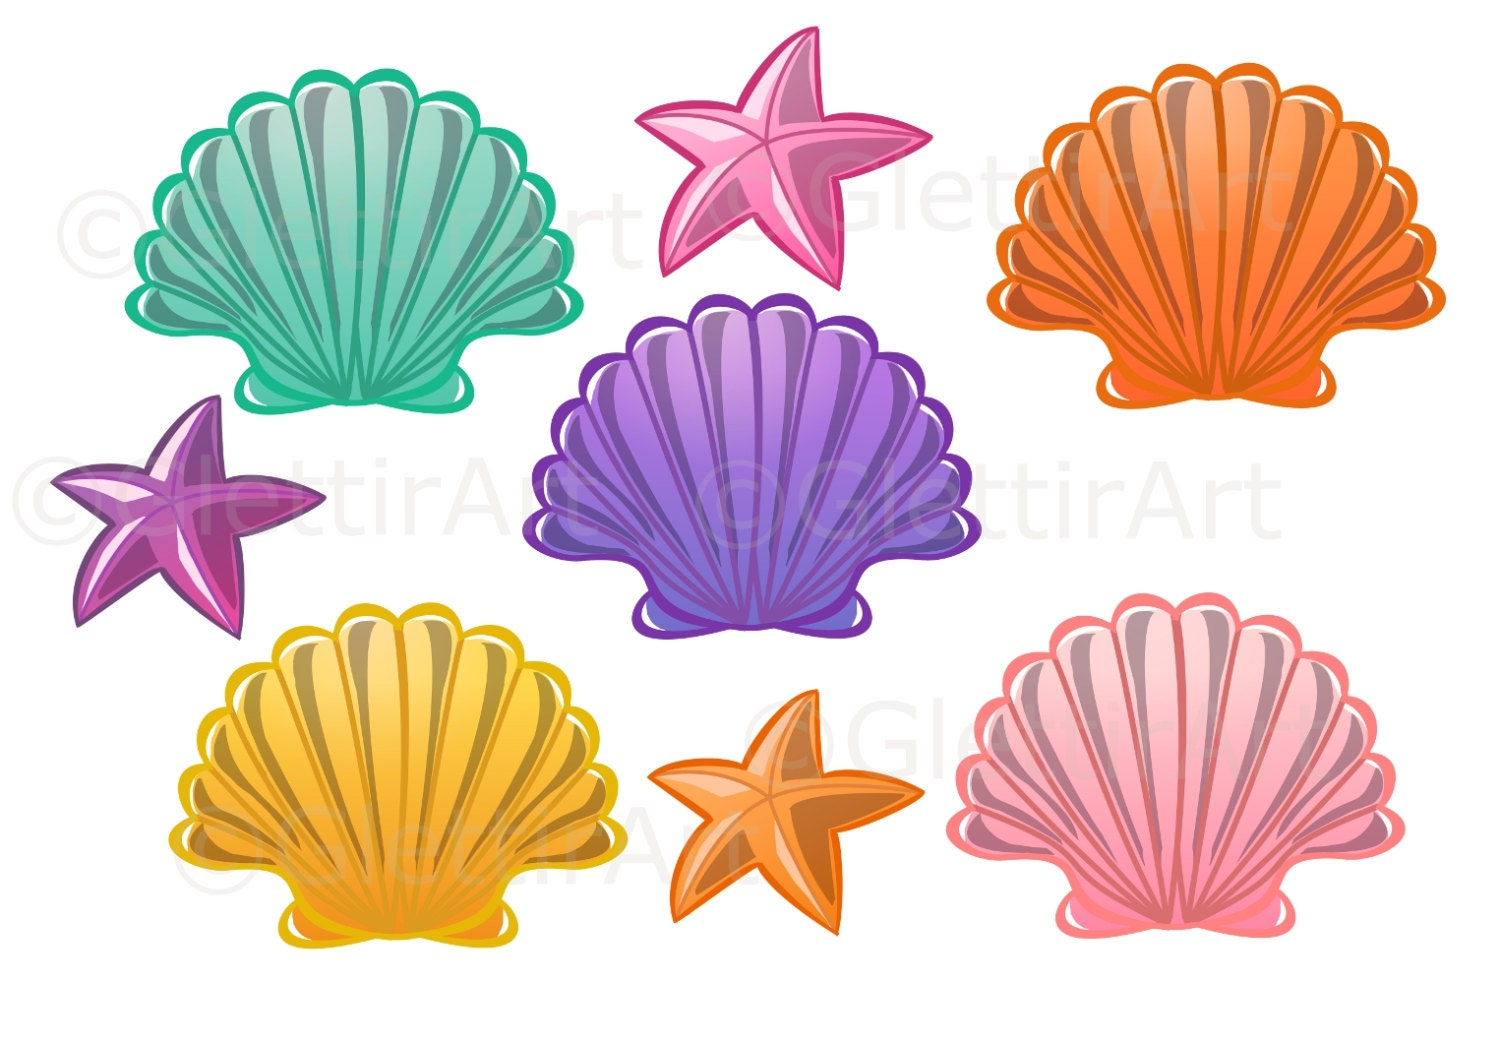 Seashell clipart Sea Shell clipart for personal and